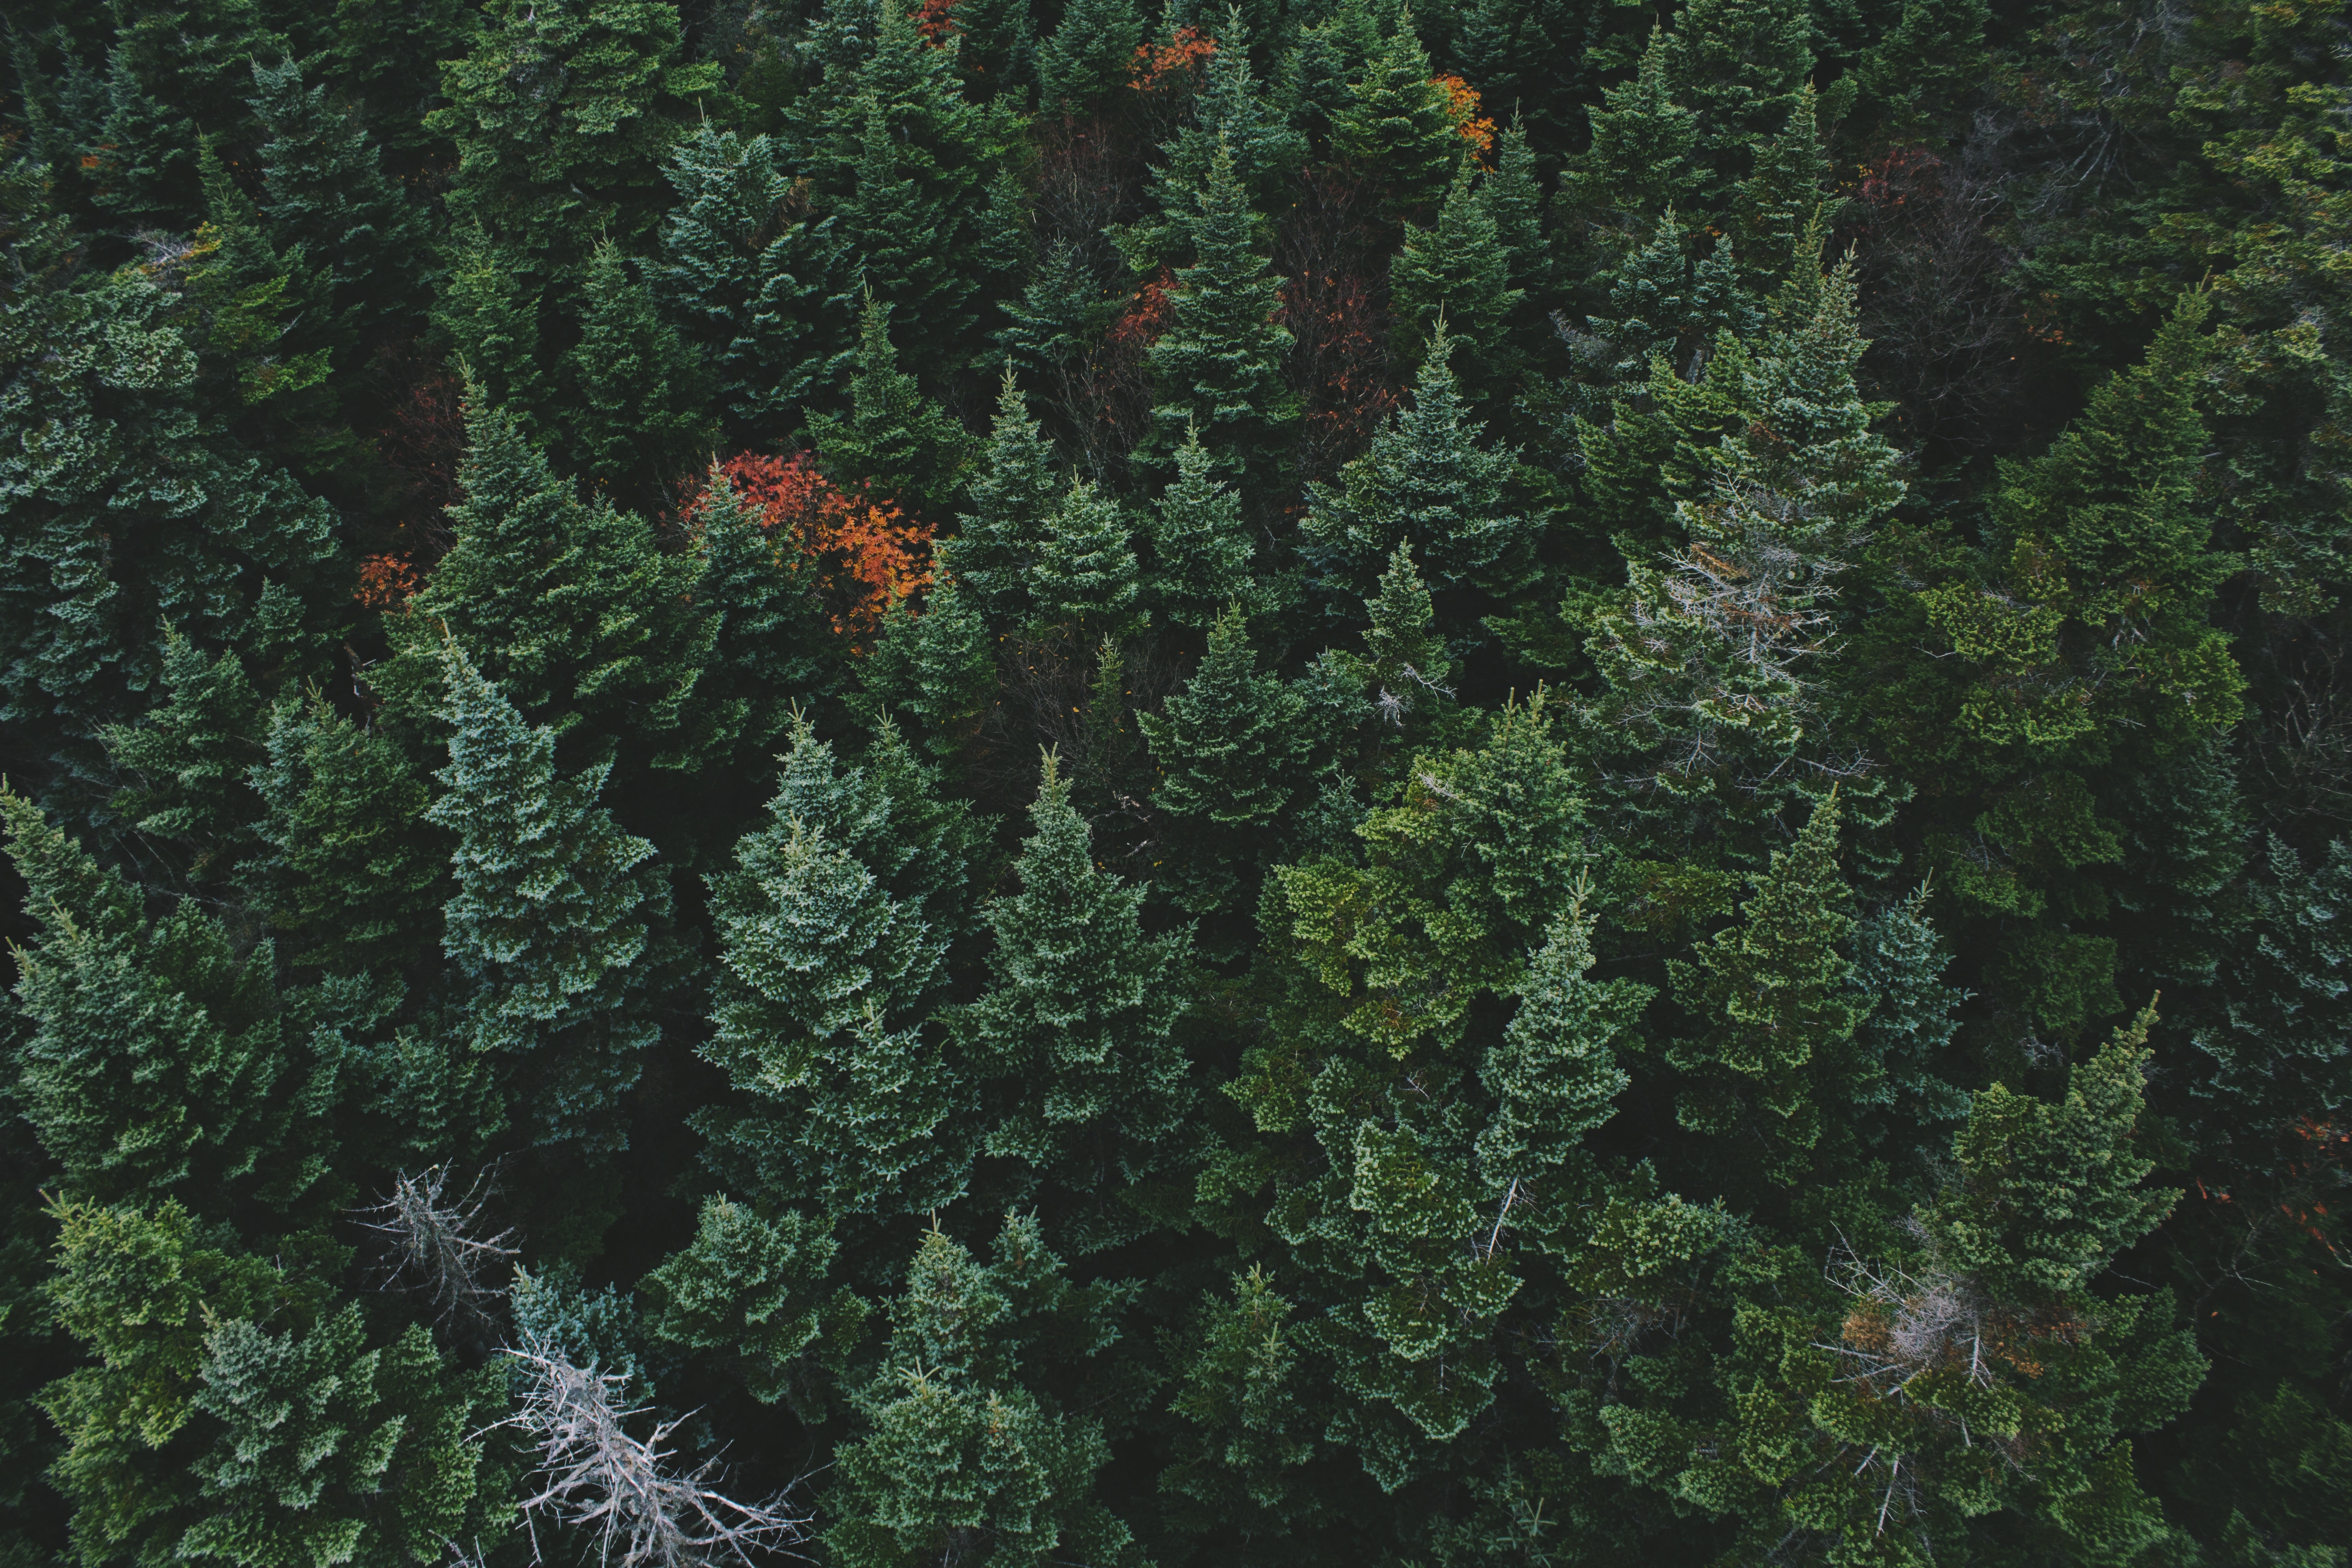 A drone shot of the treetops in a coniferous forest